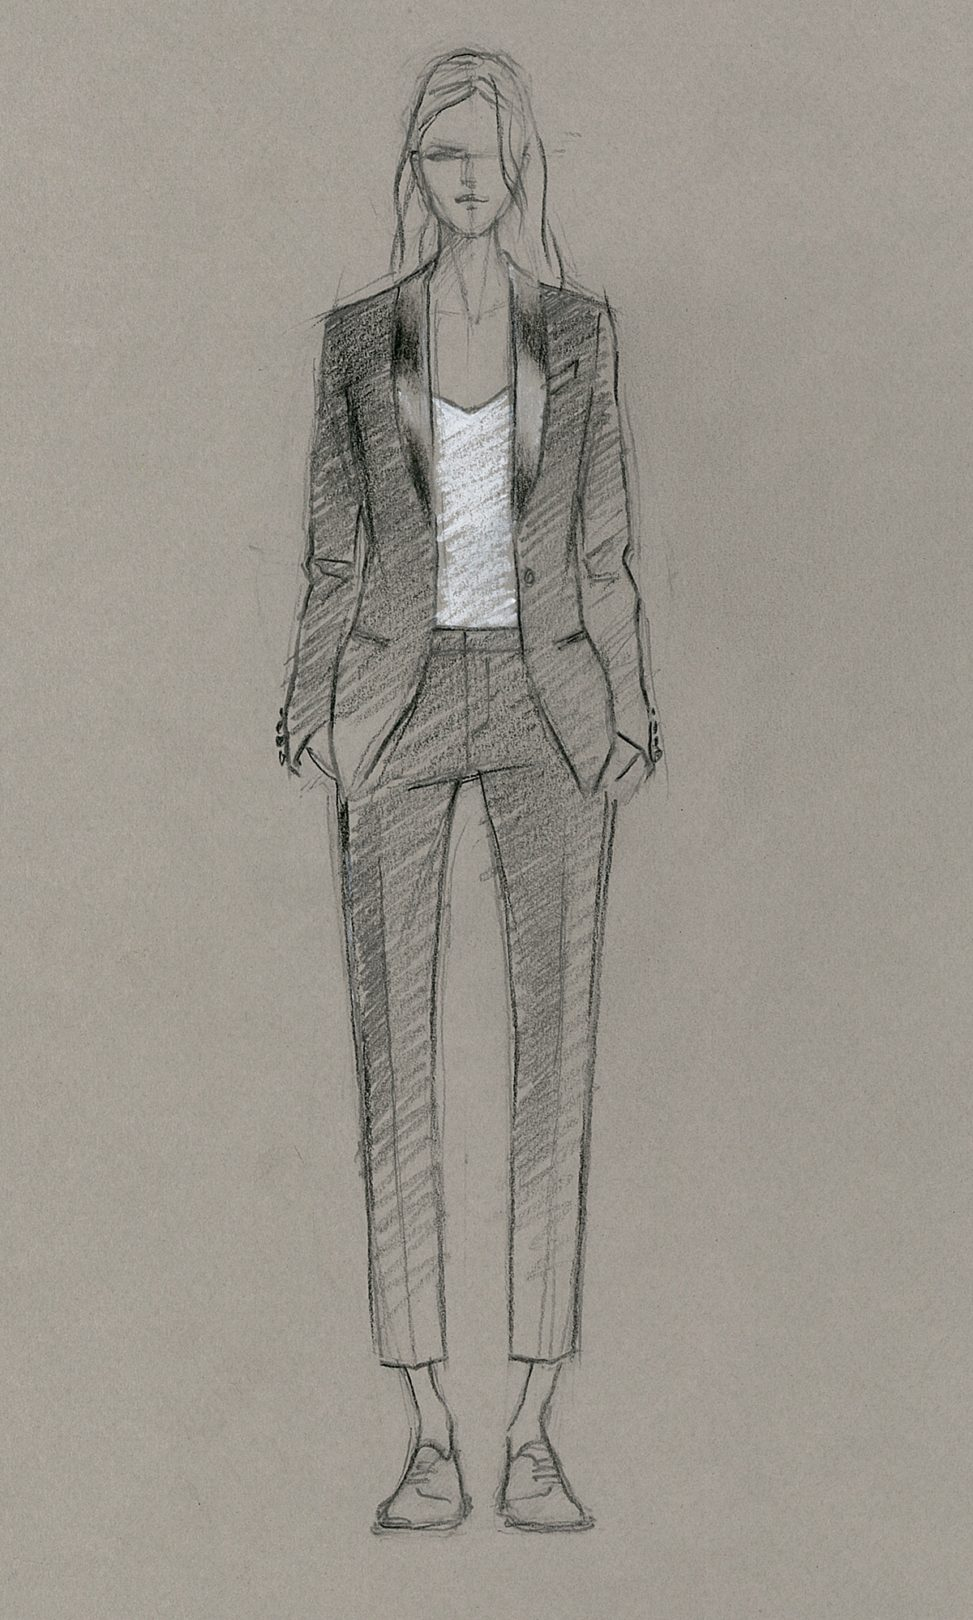 A dark pencil drawing of a woman in a black tuxedo suit